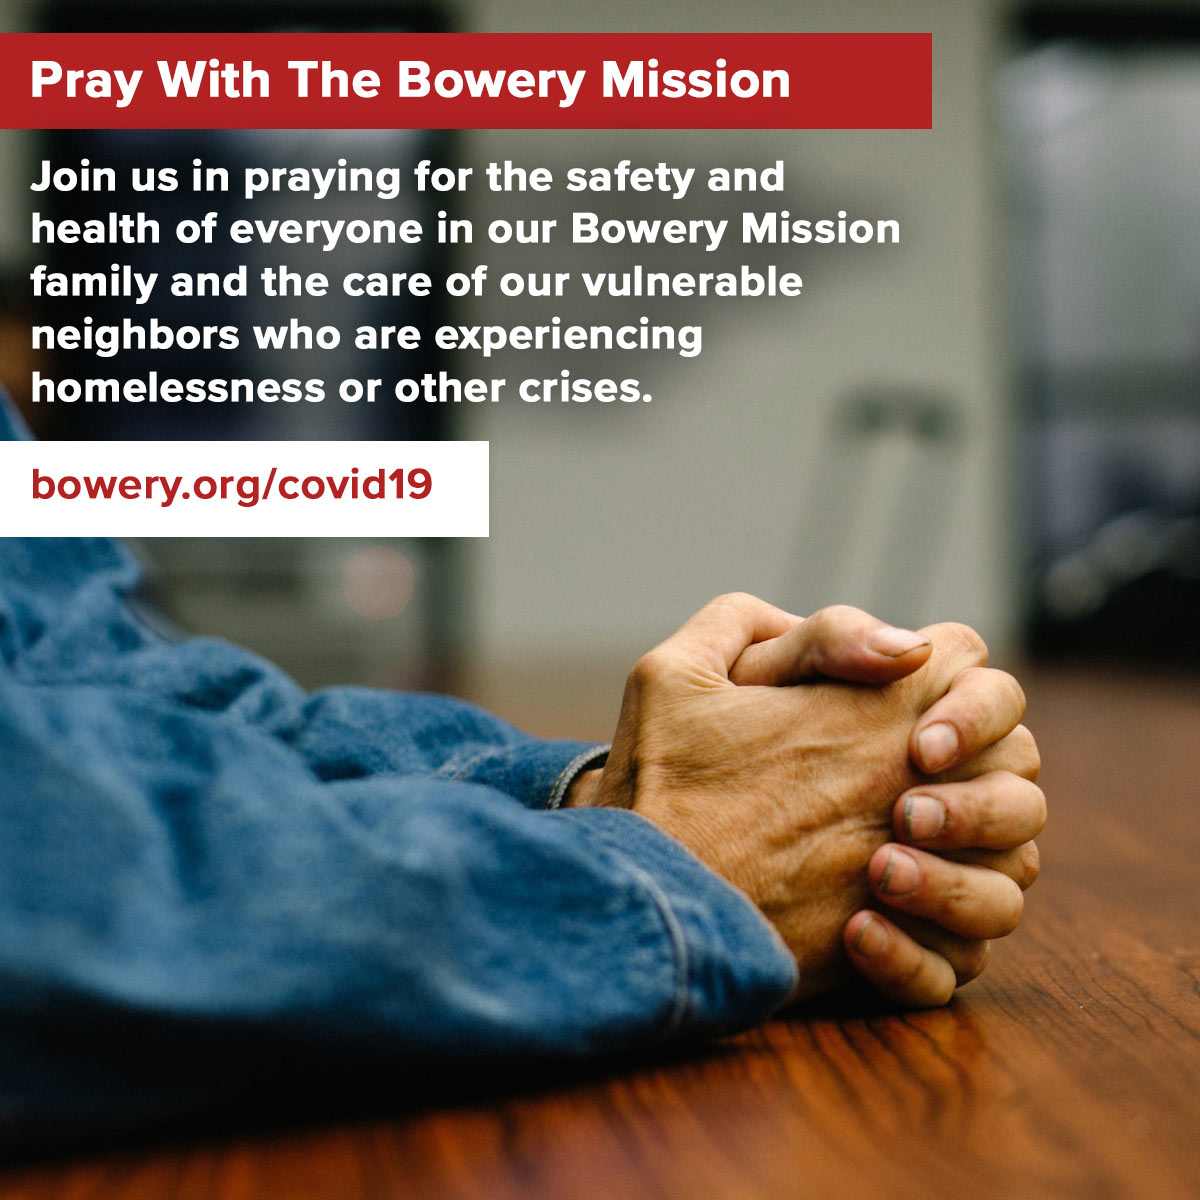 Pray with The Bowery Mission